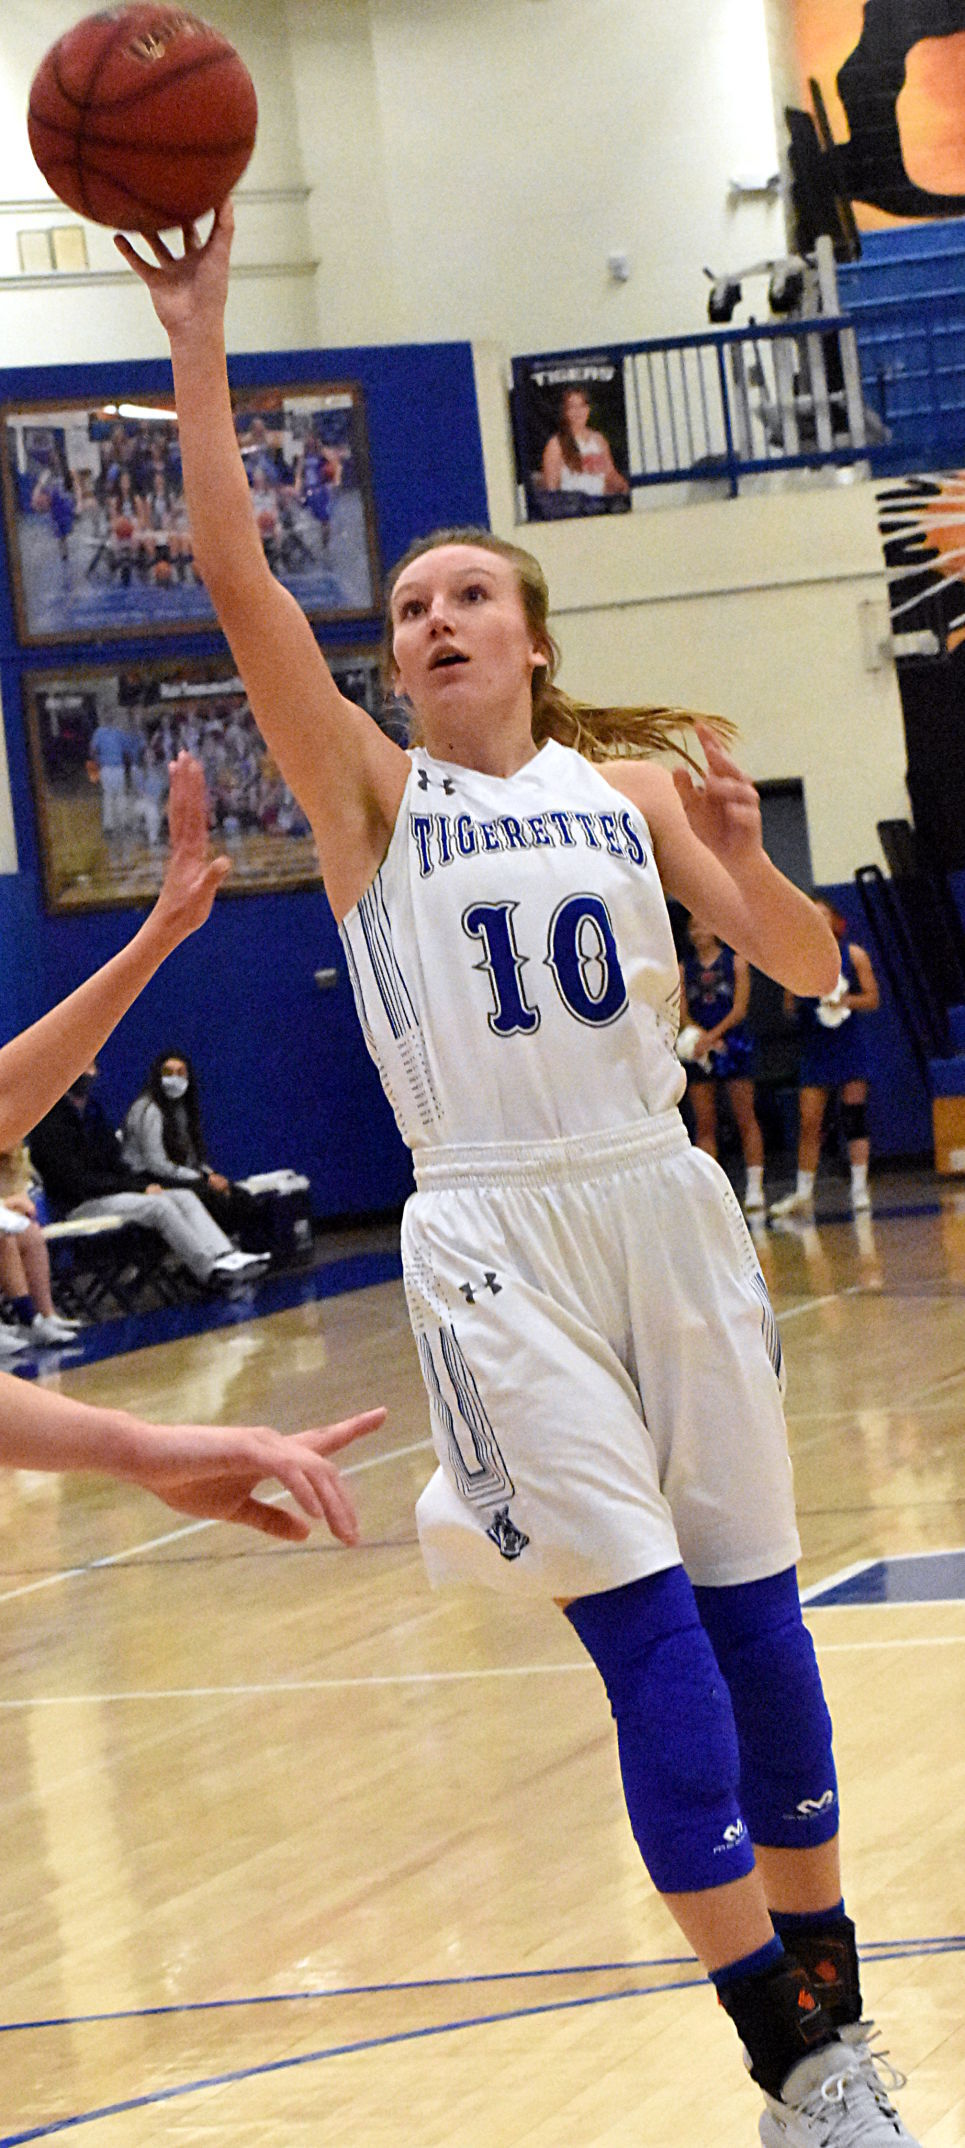 GREGORY NAMED MISS BASKETBALL FINALIST PHOTO 1